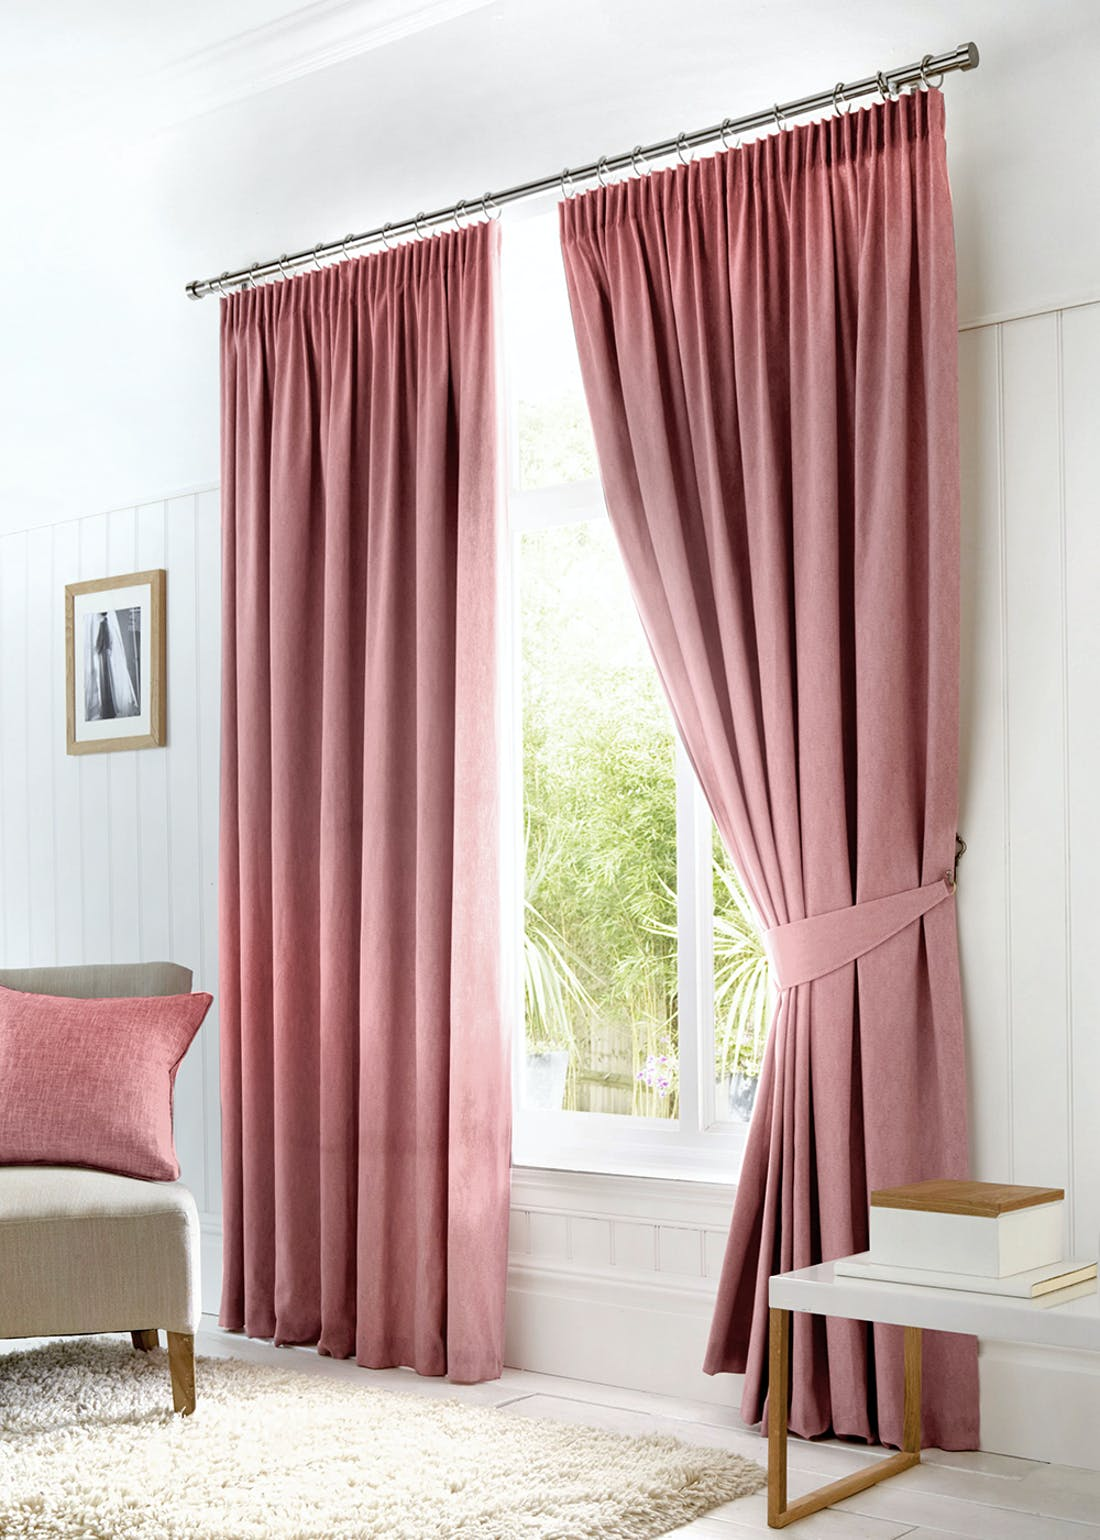 Fusion Dijon Pencil Pleat Blackout Curtains